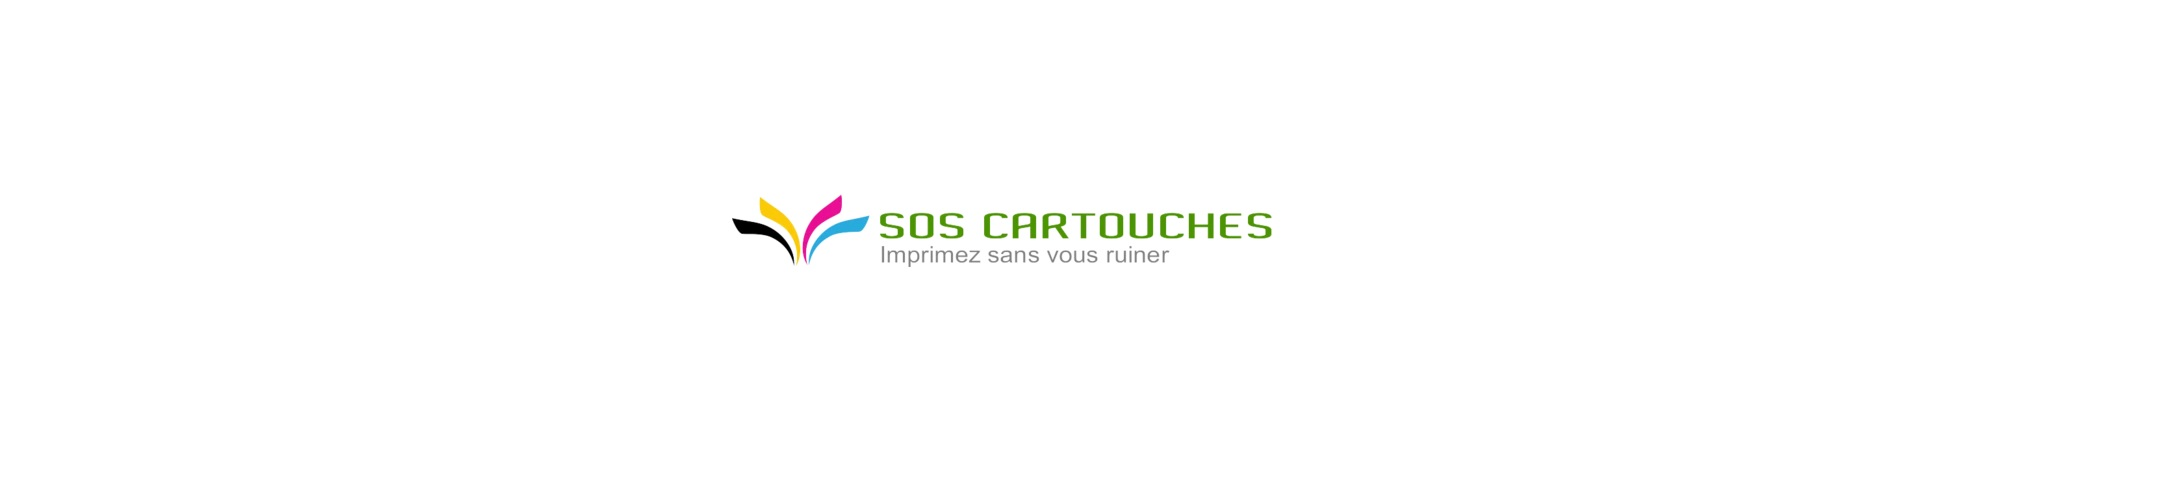 soscartouches inc.